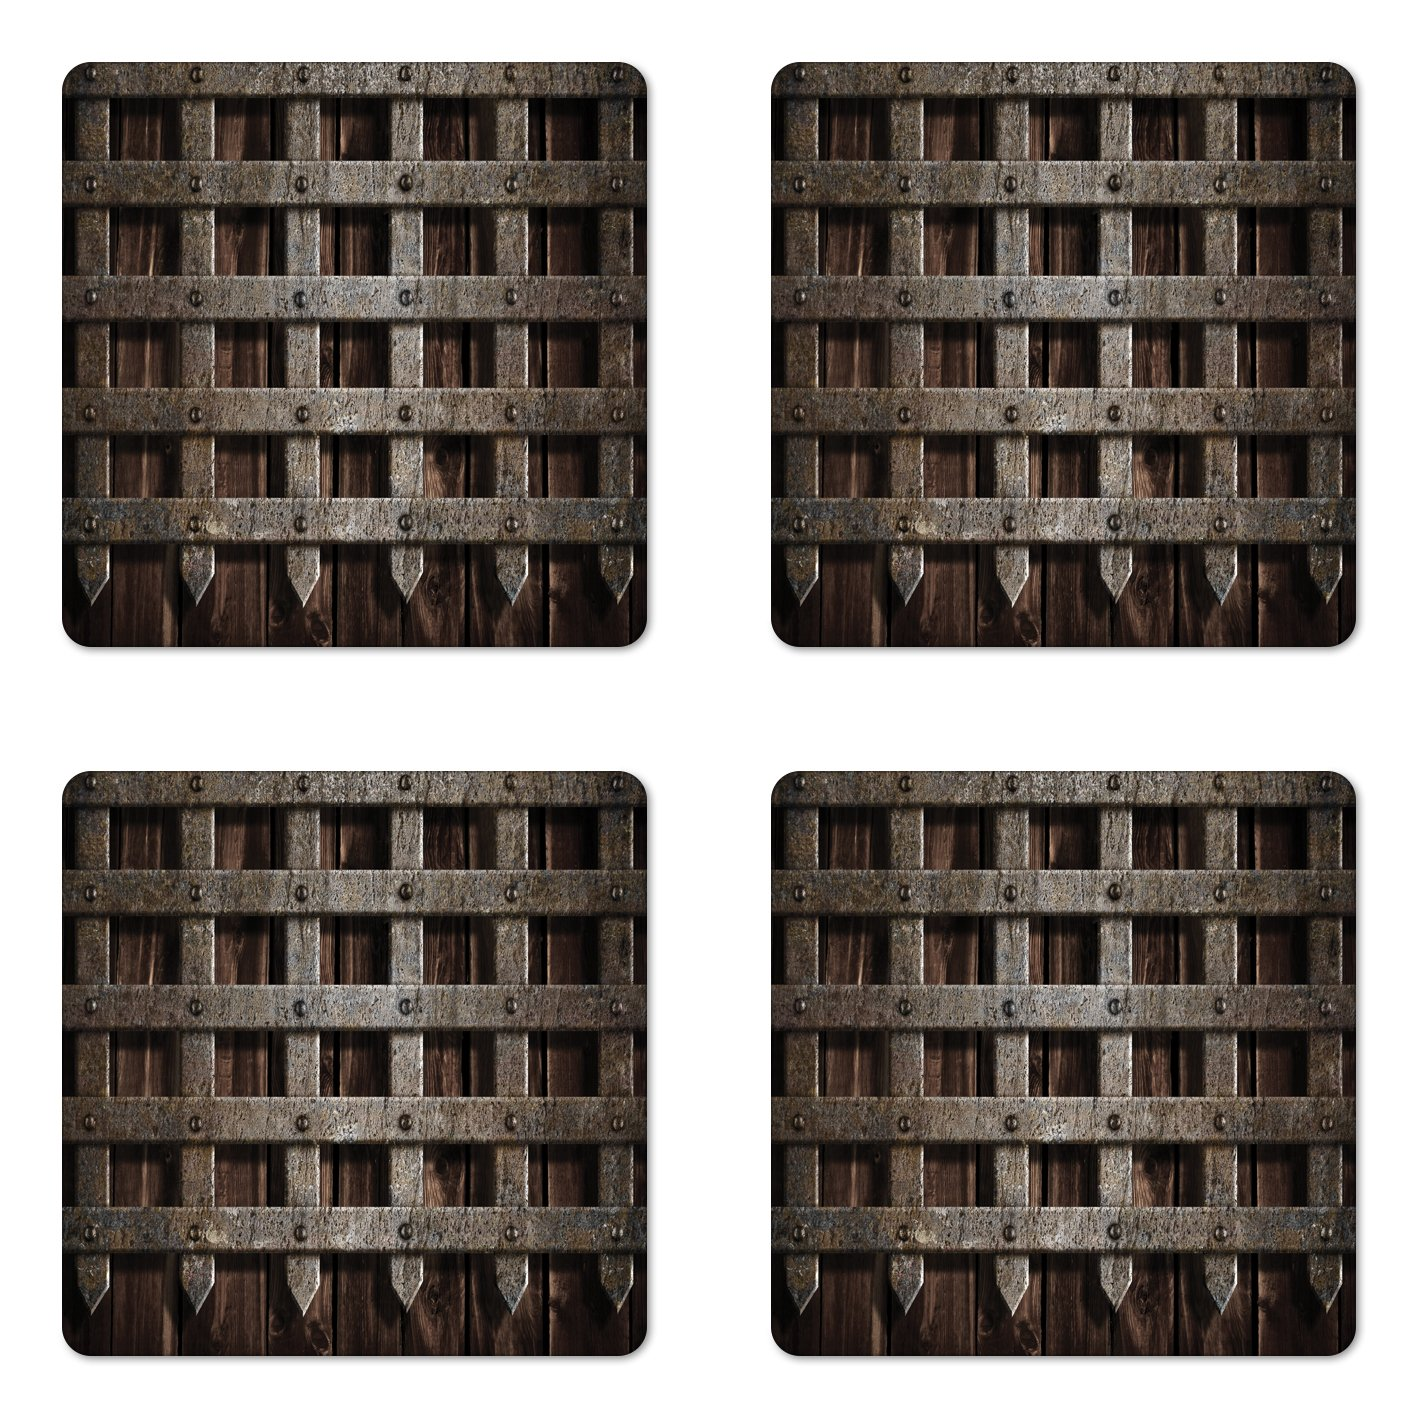 Lunarable Medieval Coaster Set of Four, Medieval Wooden Castle Wall and Gate Greek Style Mid-Century Designed Artwork Print, Square Hardboard Gloss Coasters for Drinks, Grey